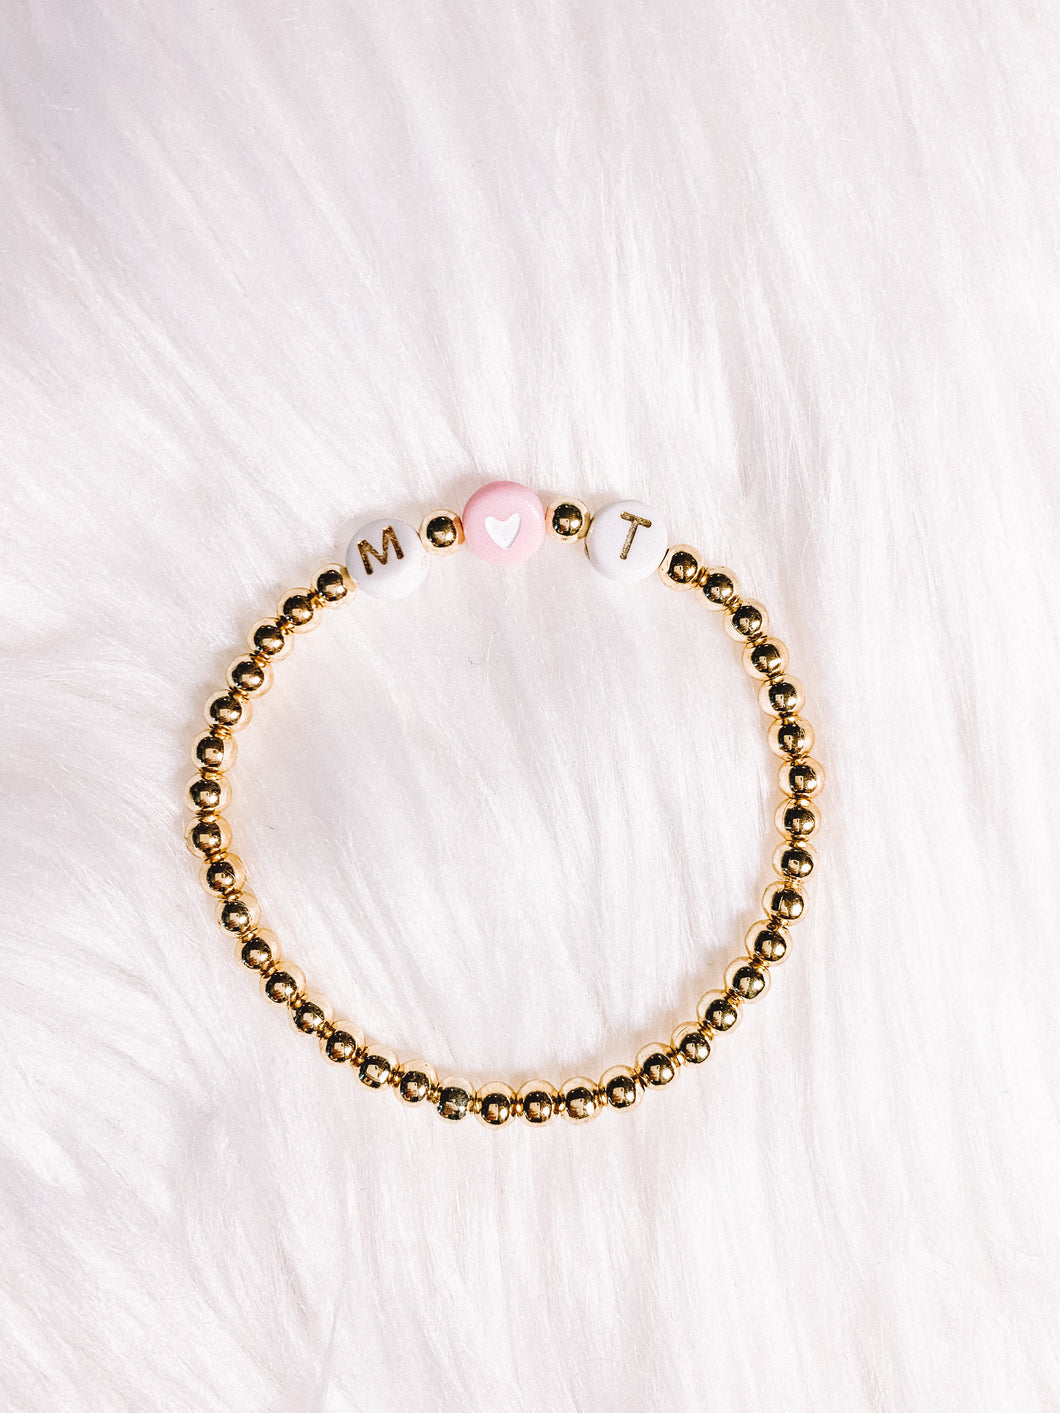 Initial Bracelet- White & Gold with Pink Heart